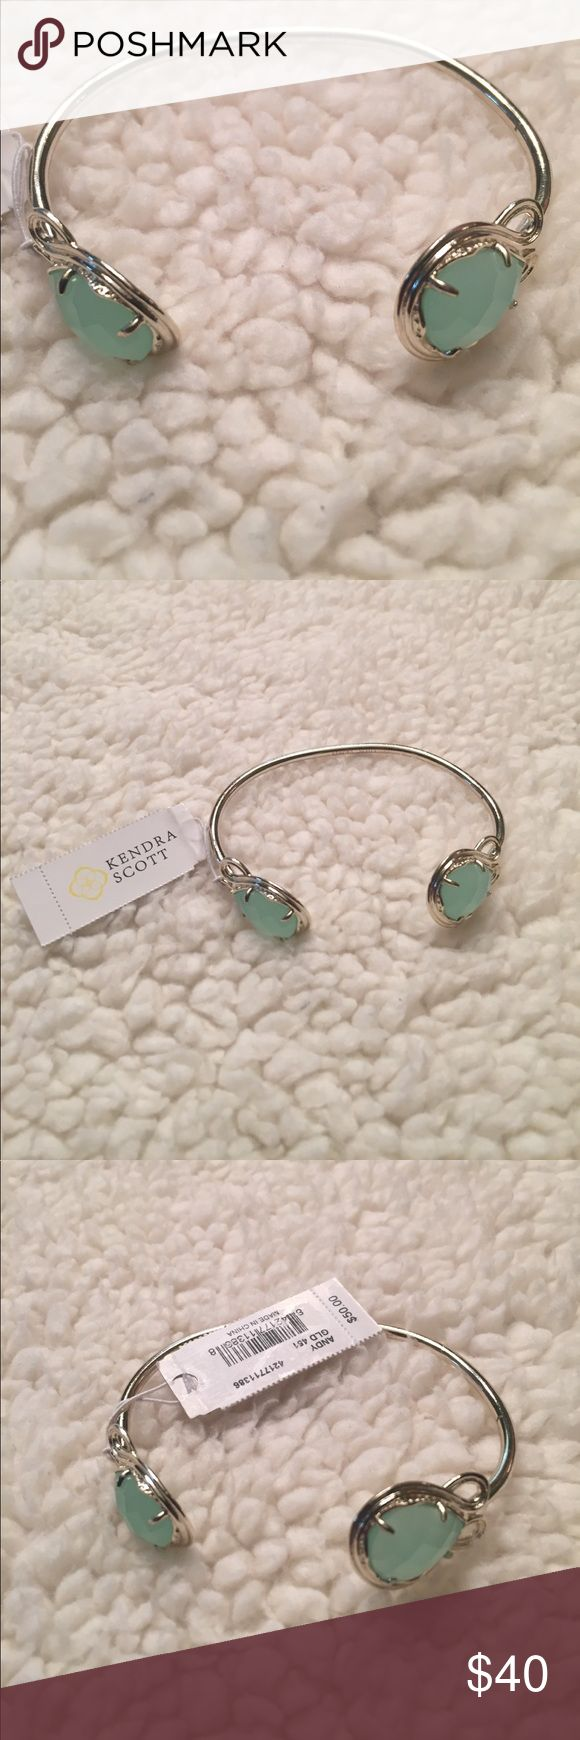 Kendra Scott Bracelet Kendra Scott Bracelet.  Does not come with the little blue bag. Kendra Scott Jewelry Bracelets